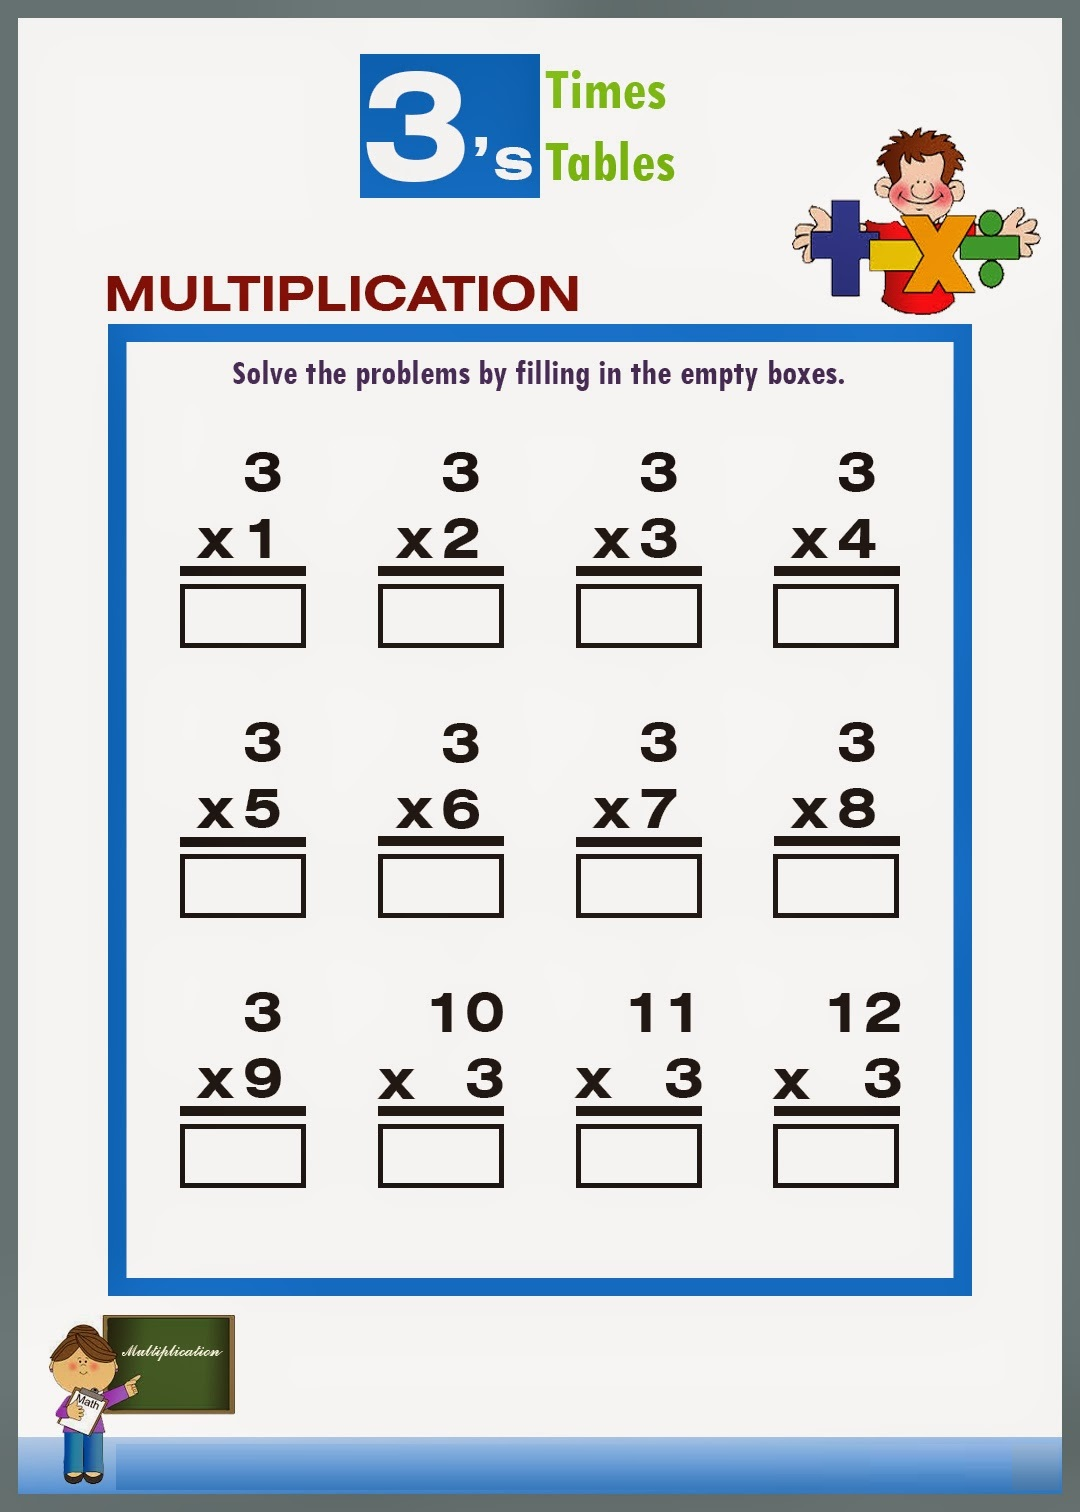 Negative multiplication table gallery periodic table images six times tables worksheets multiplication worksheets 3s word download a times table chart exponential worksheet negative gamestrikefo Choice Image